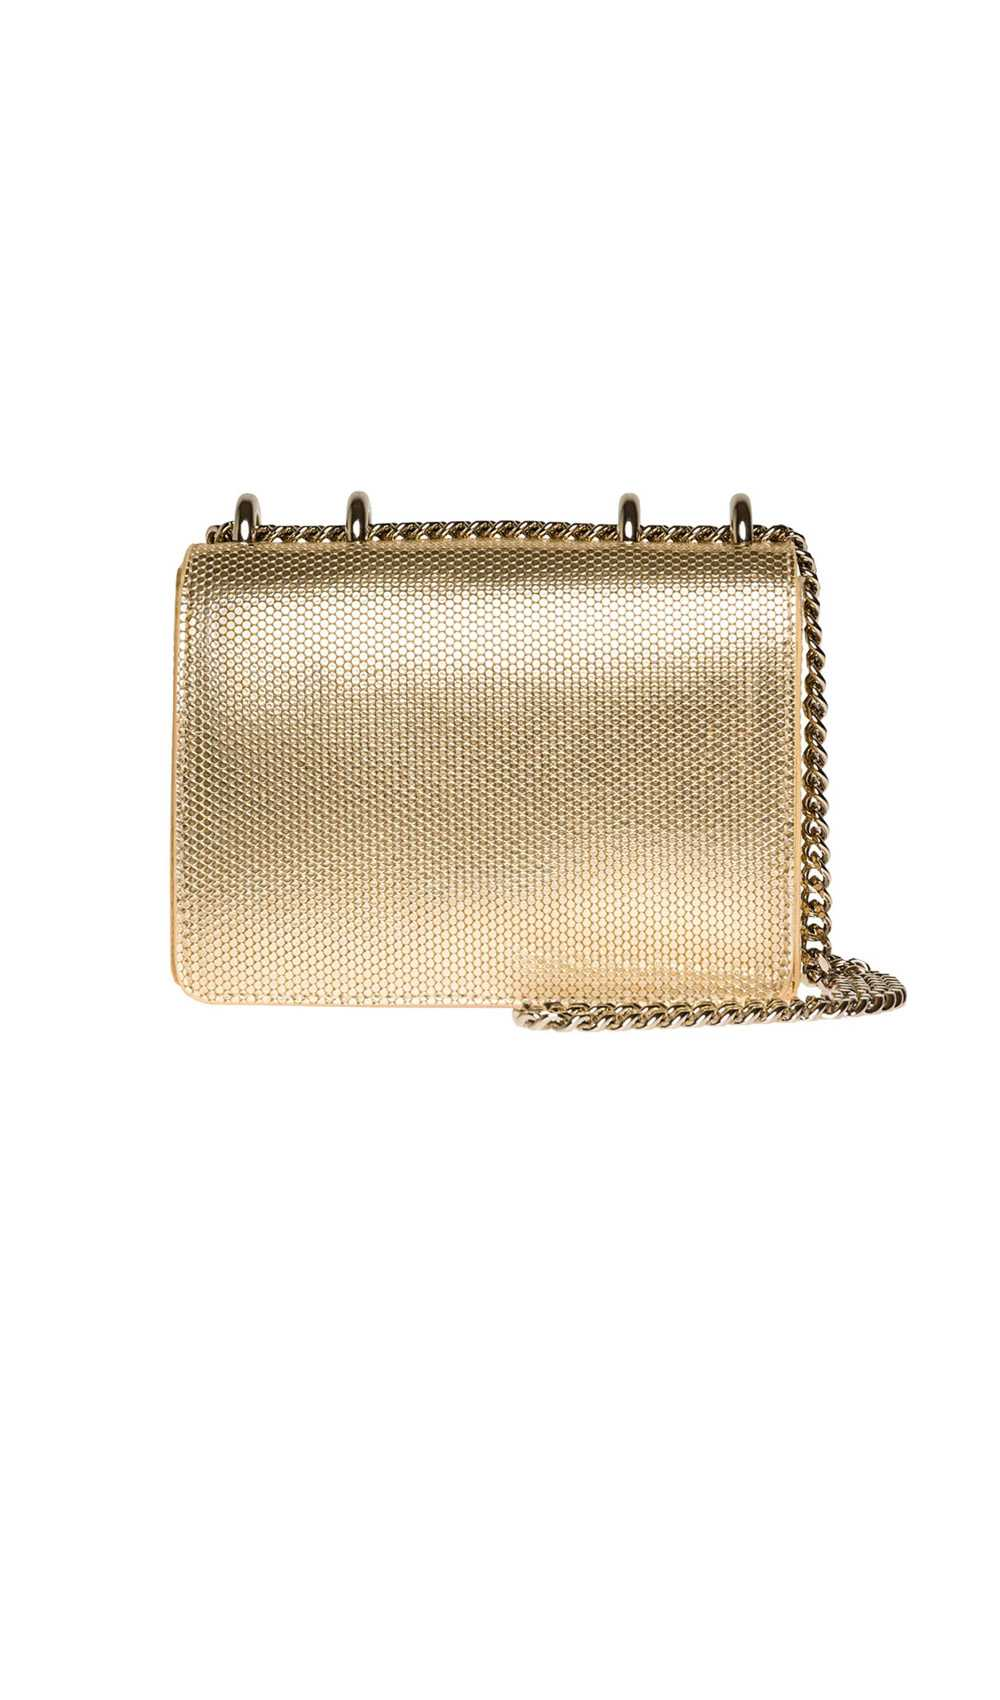 Ponticelli Bag in Gold